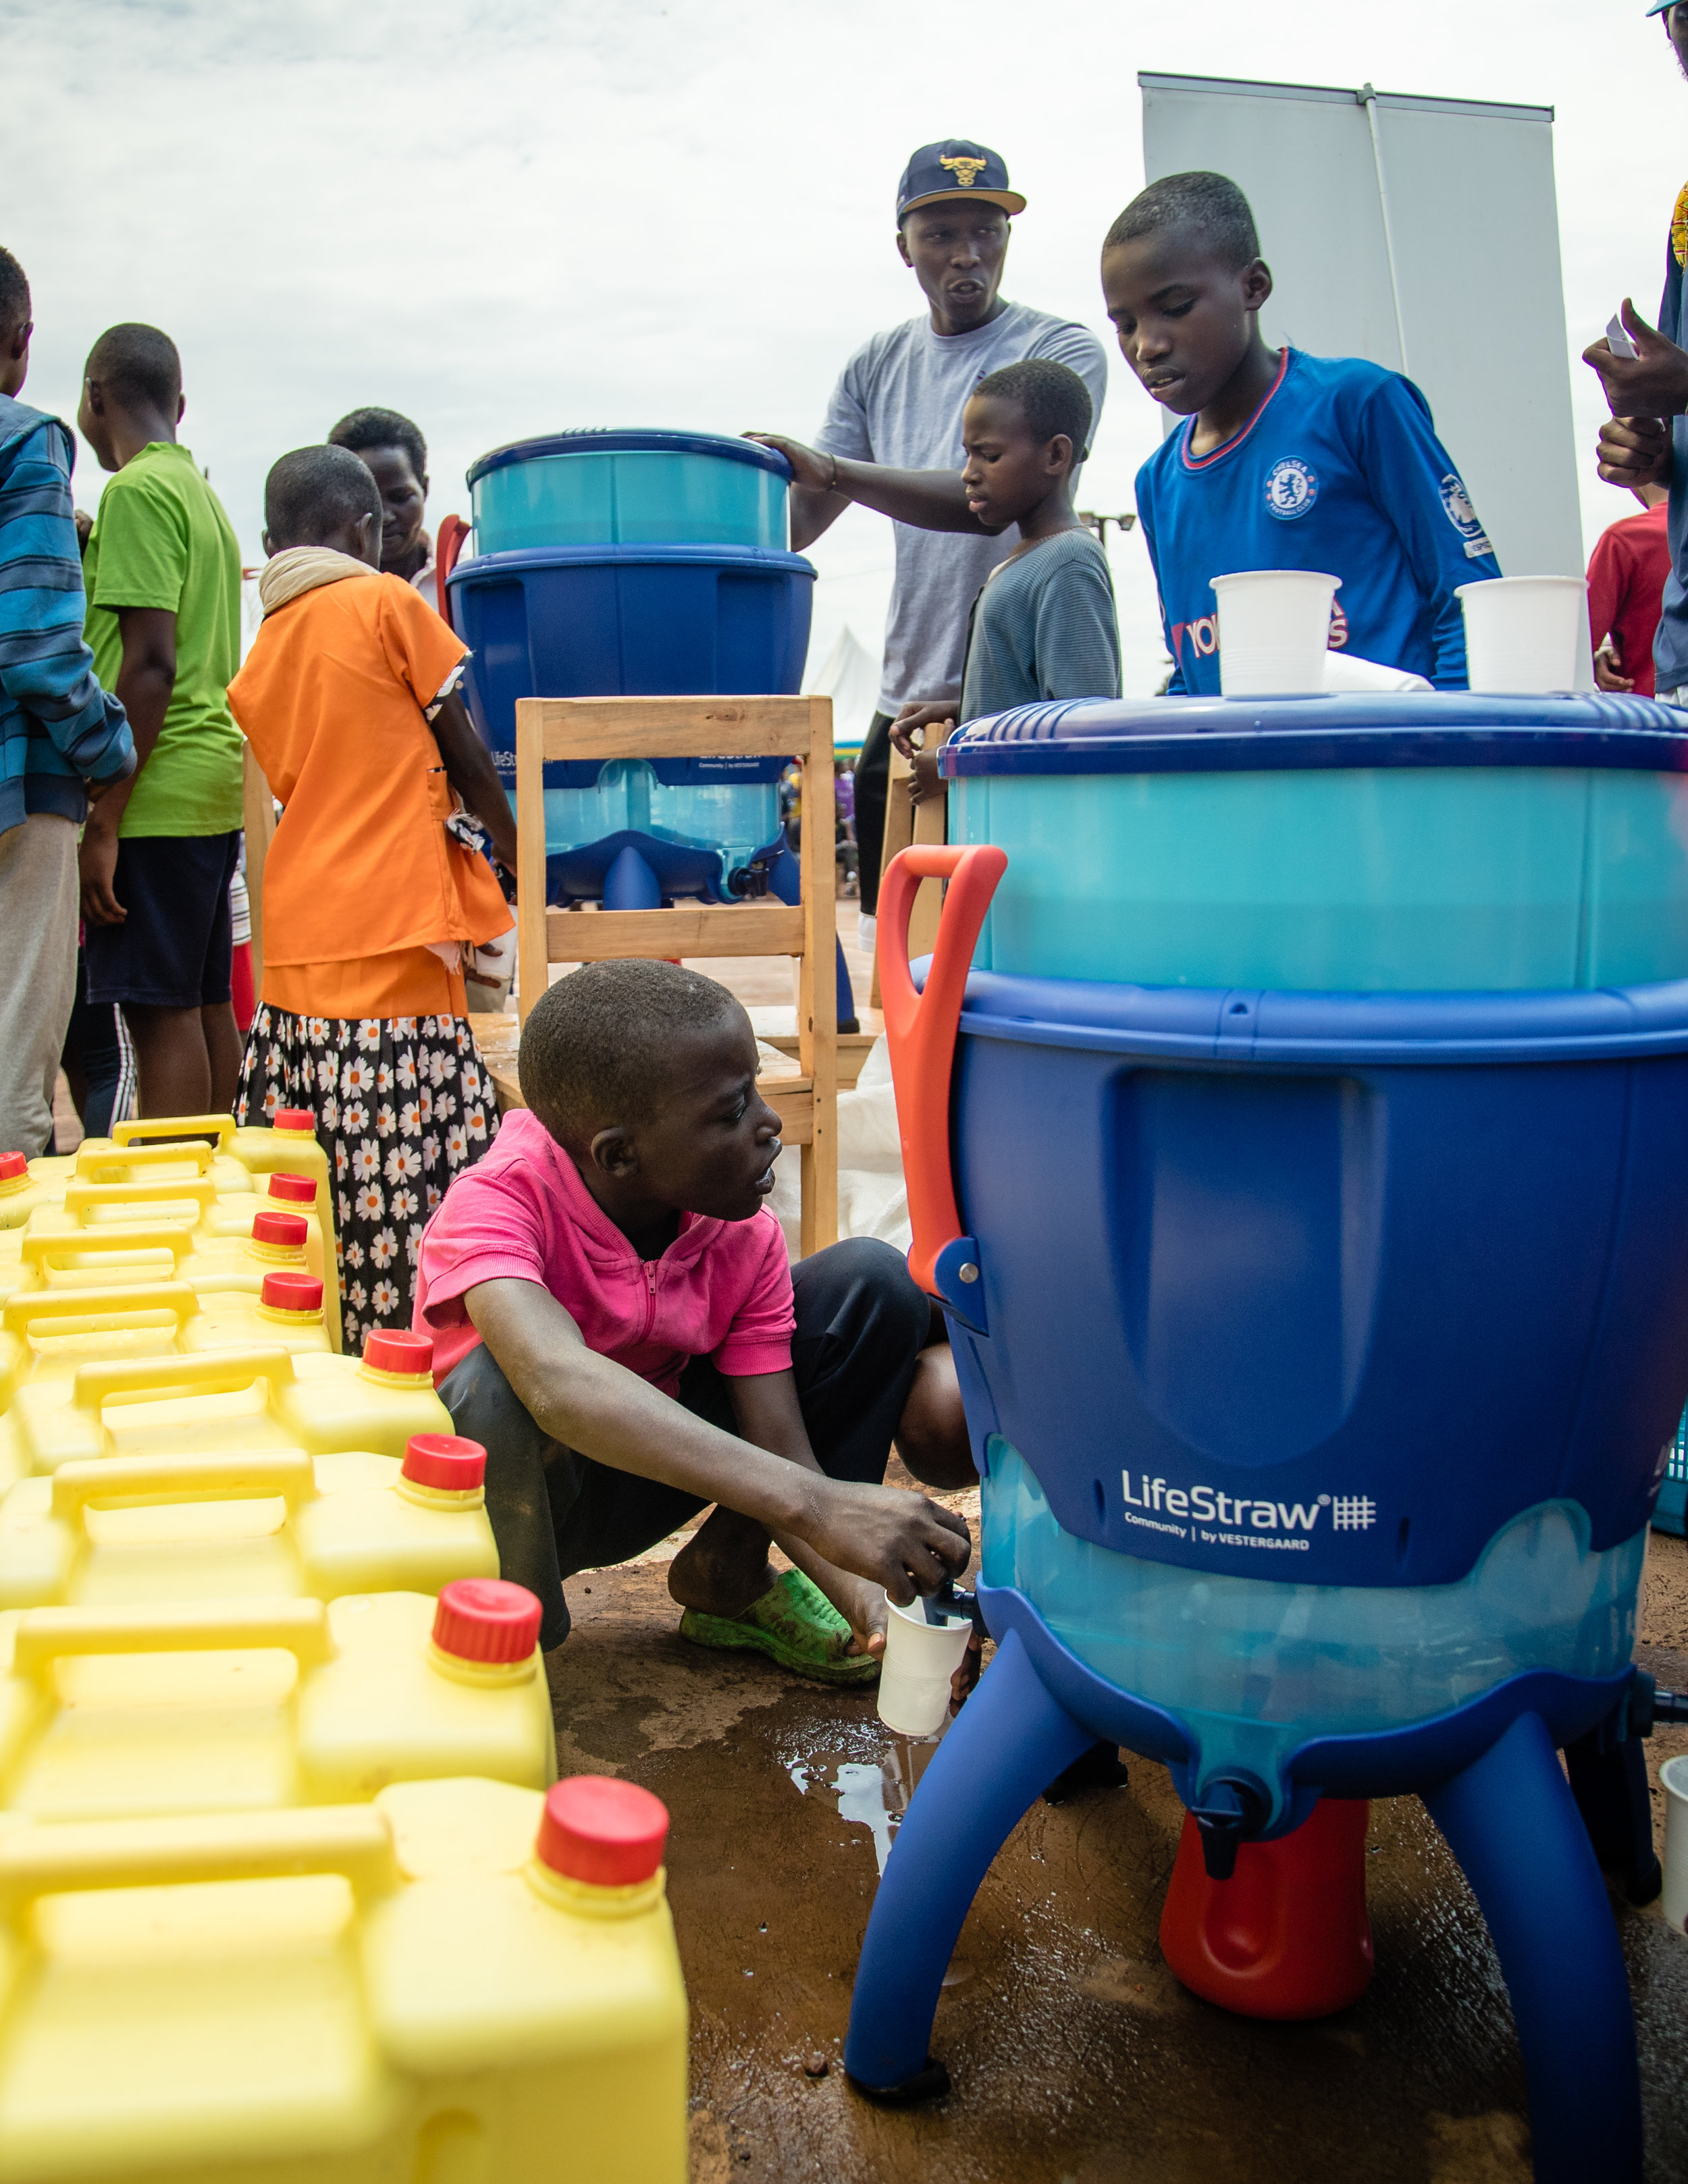 A boy fills up his cup with filtered water located next to the court.